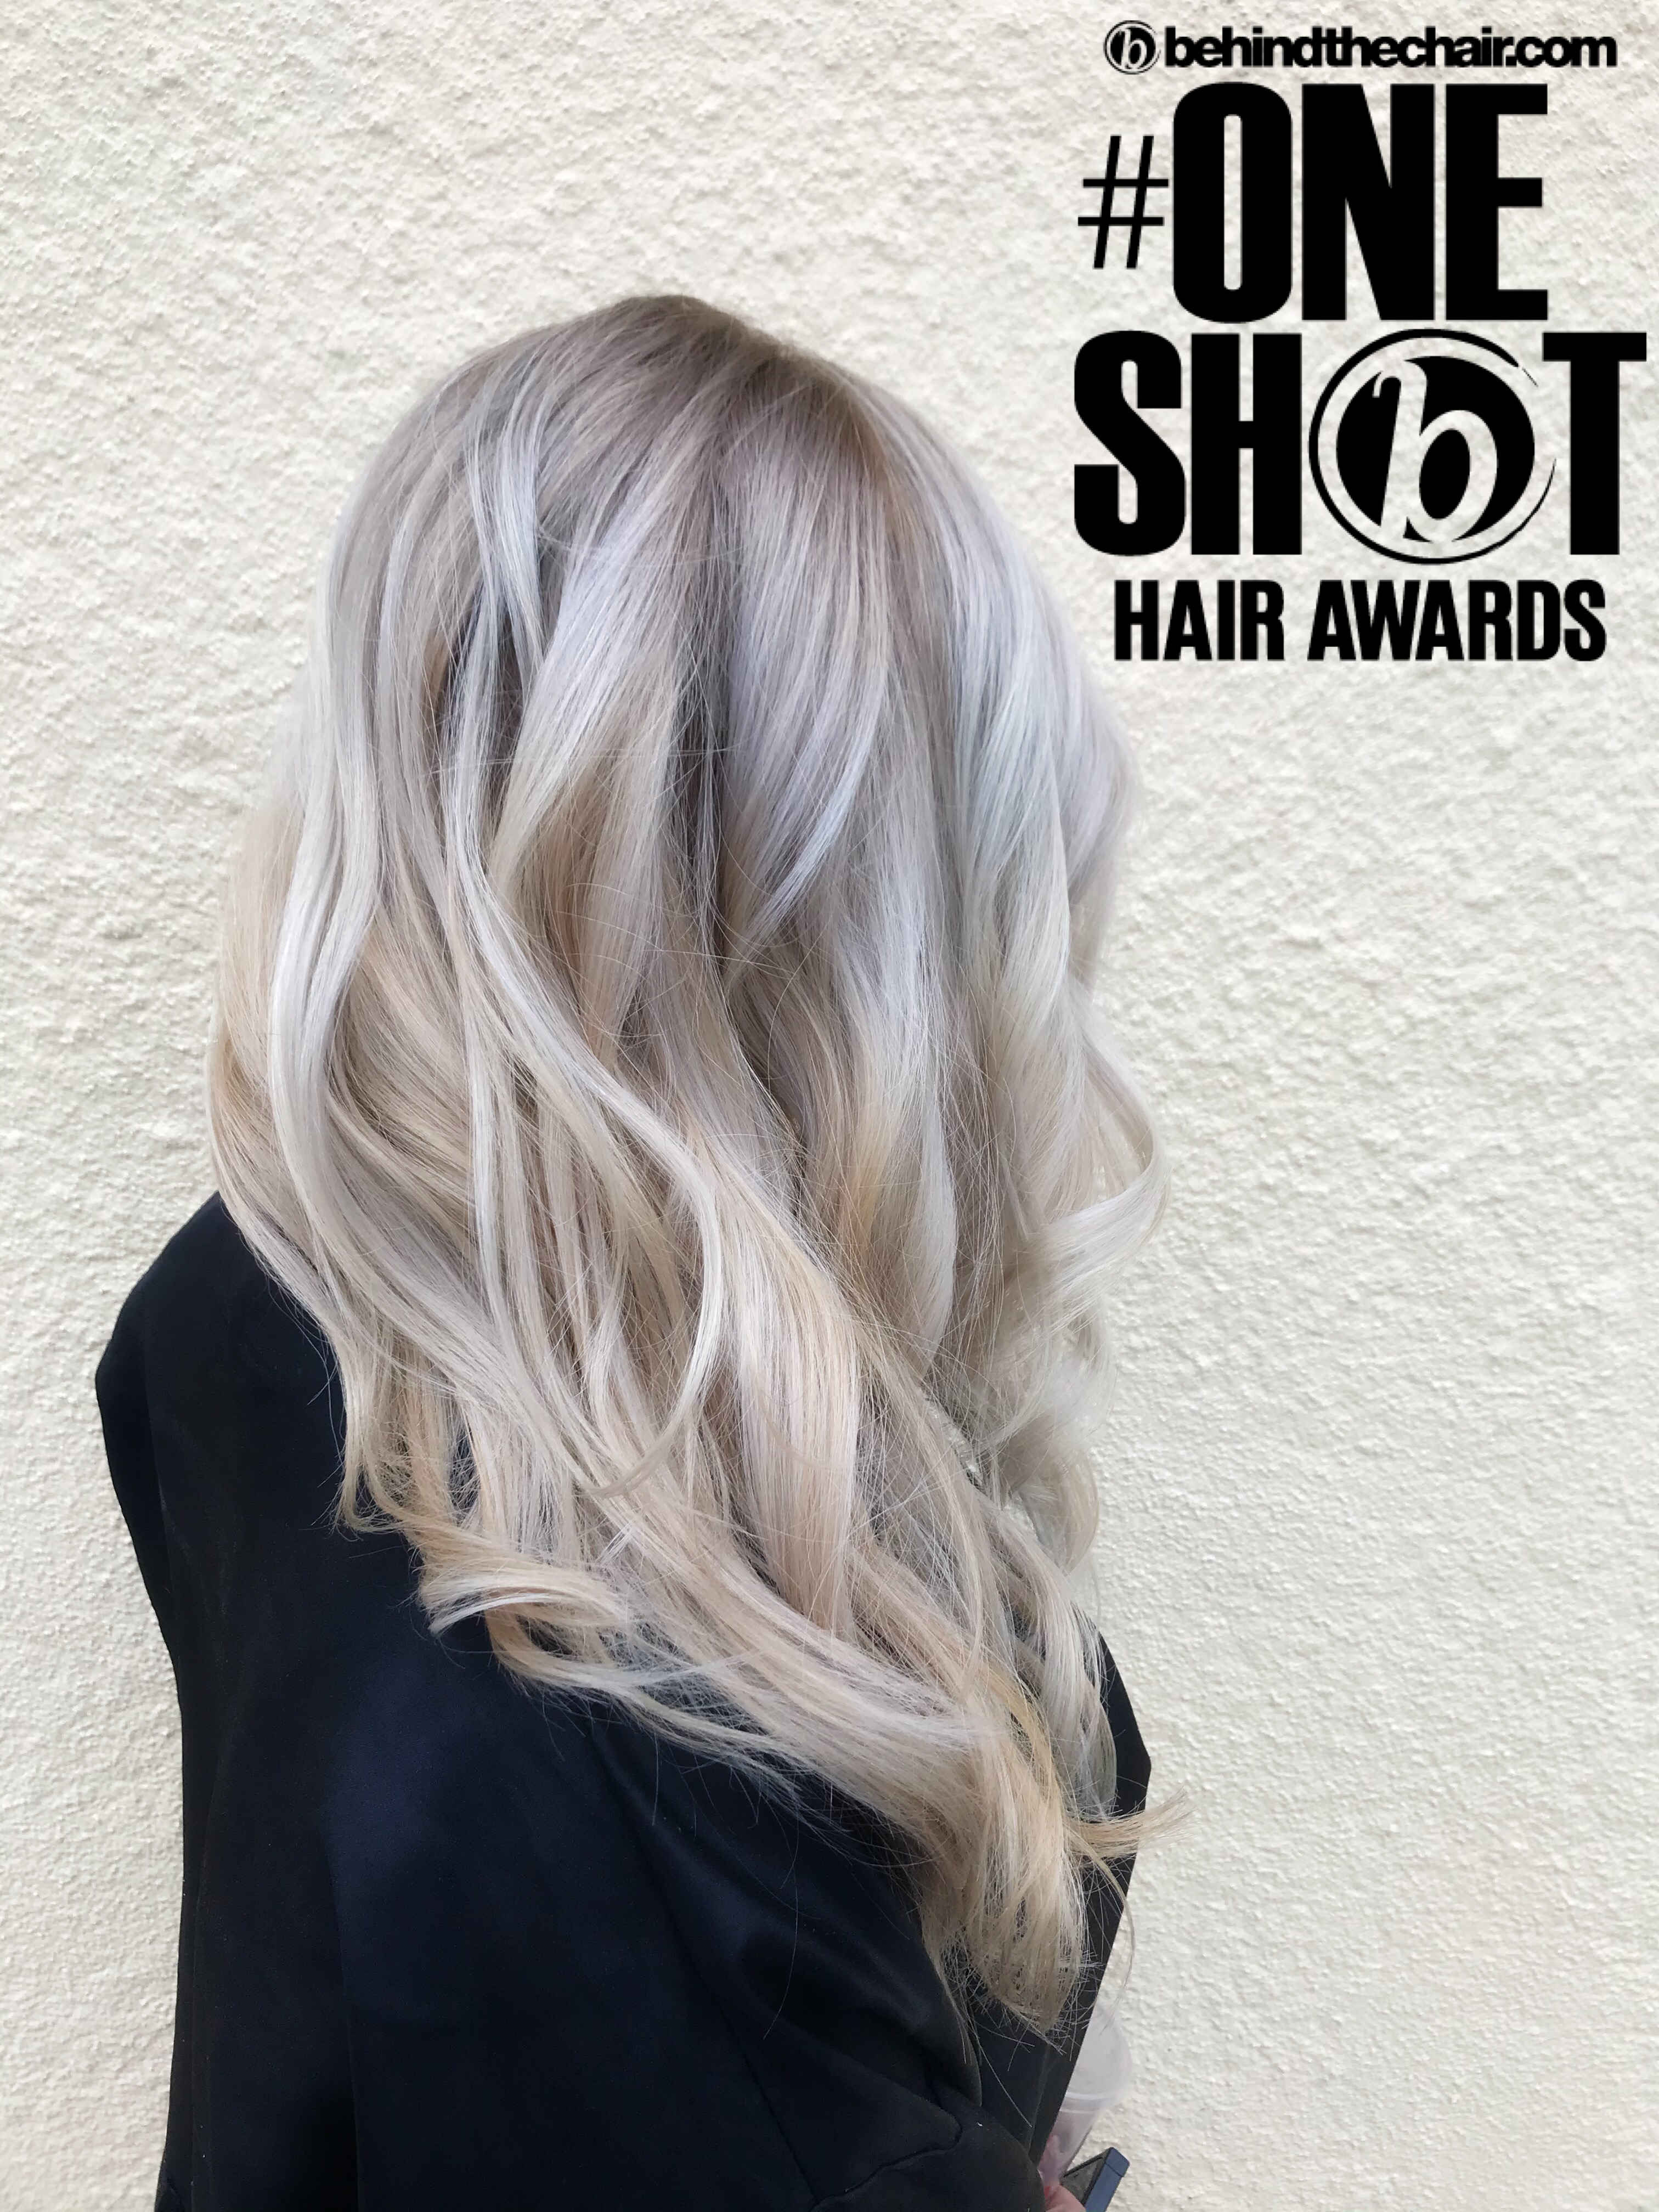 Dreamy Blonde Balayage in 2020 Shot hair styles, Blonde